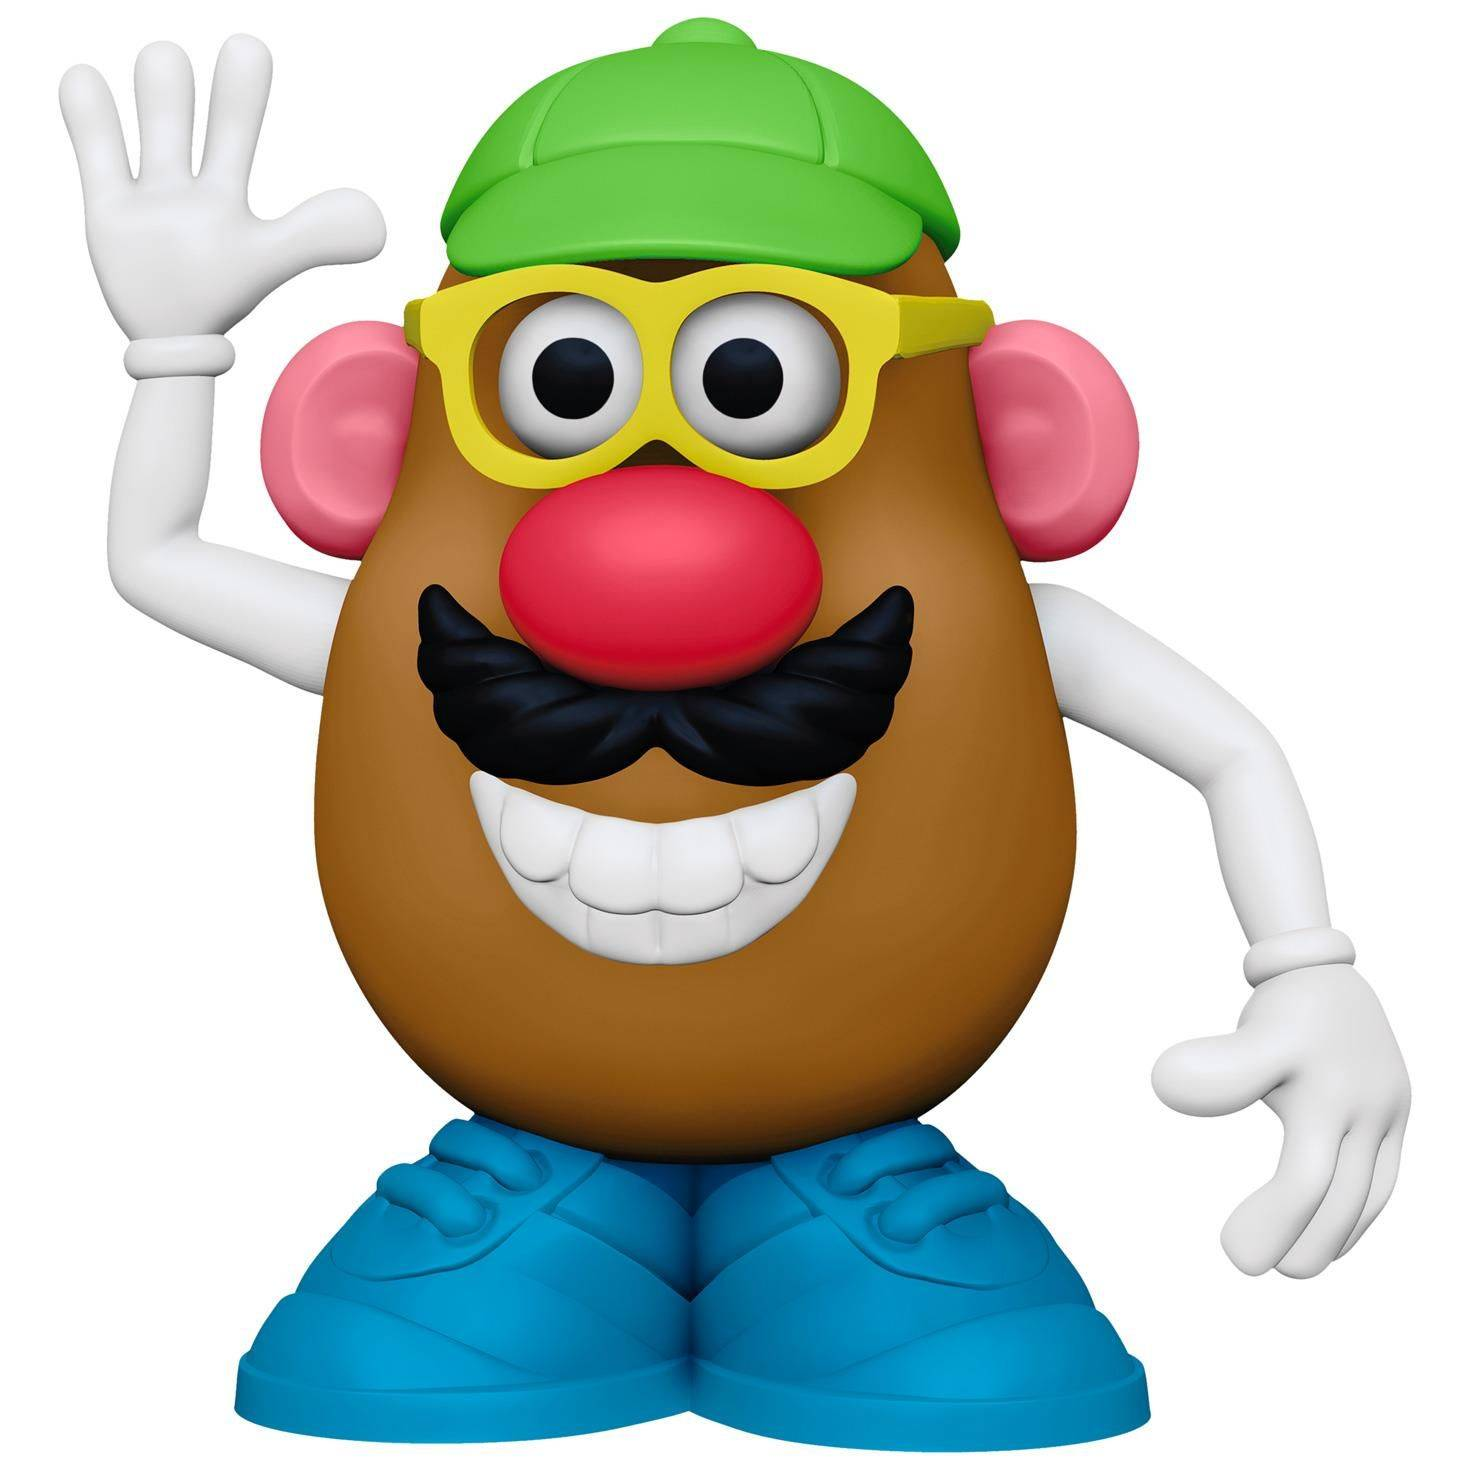 mr potato head - Mr. Potato head is great for so many activities and concepts. We use it to teach body parts using expressive and receptive language. It is amazing to put it on, take it off, put the hat on top, etc. The potato heads can walk, run, talk, fall, etc. and use different verbs. We have also begun to separate the parts and categorize them into clothes, body parts, etc. It is great for collaborative play or turn taking, and I have begun introducing adjectivies,